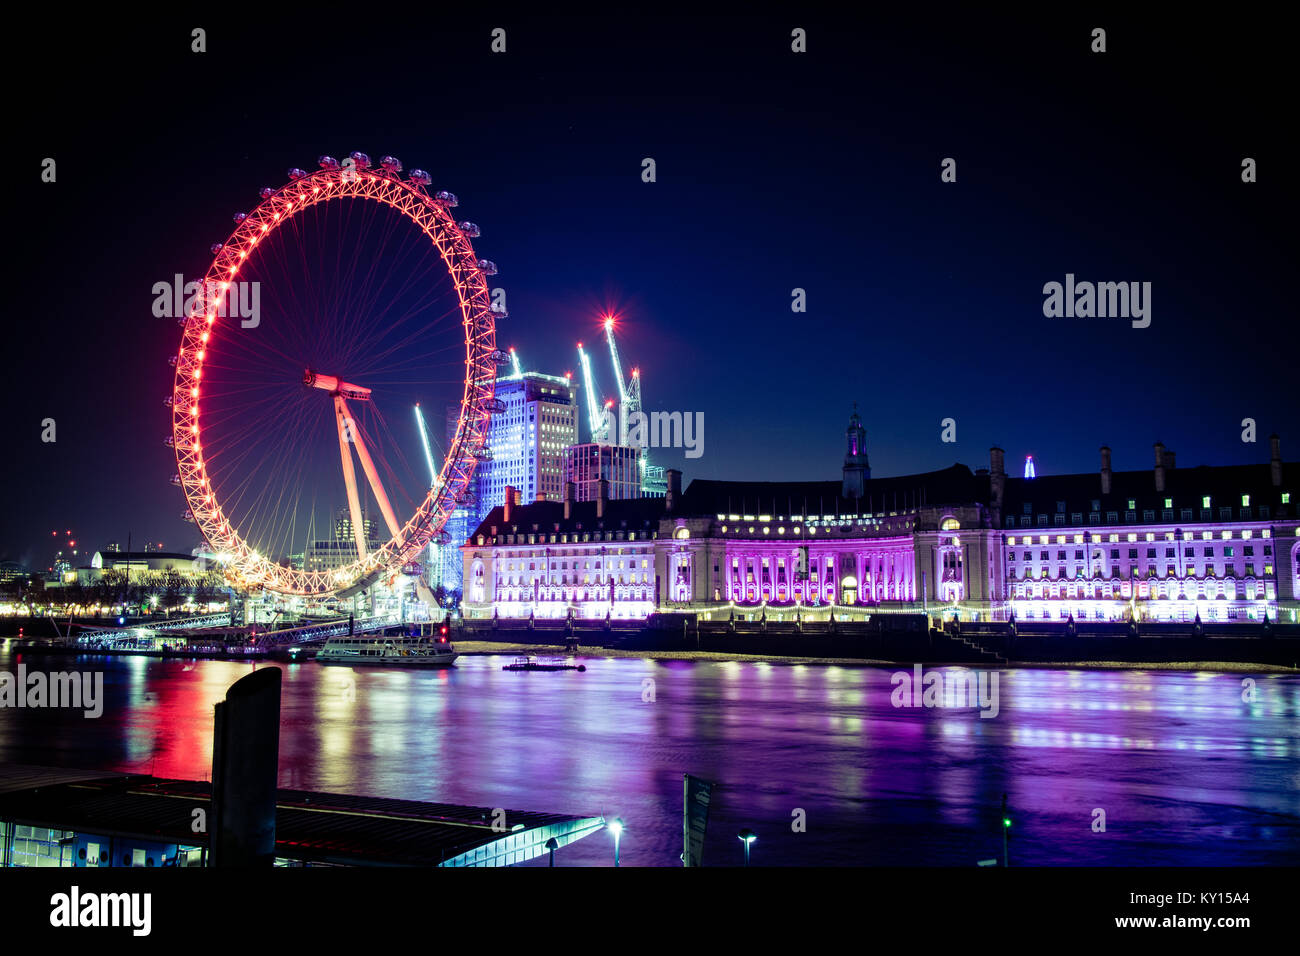 The London eye and the Thames river lit up at night. - Stock Image